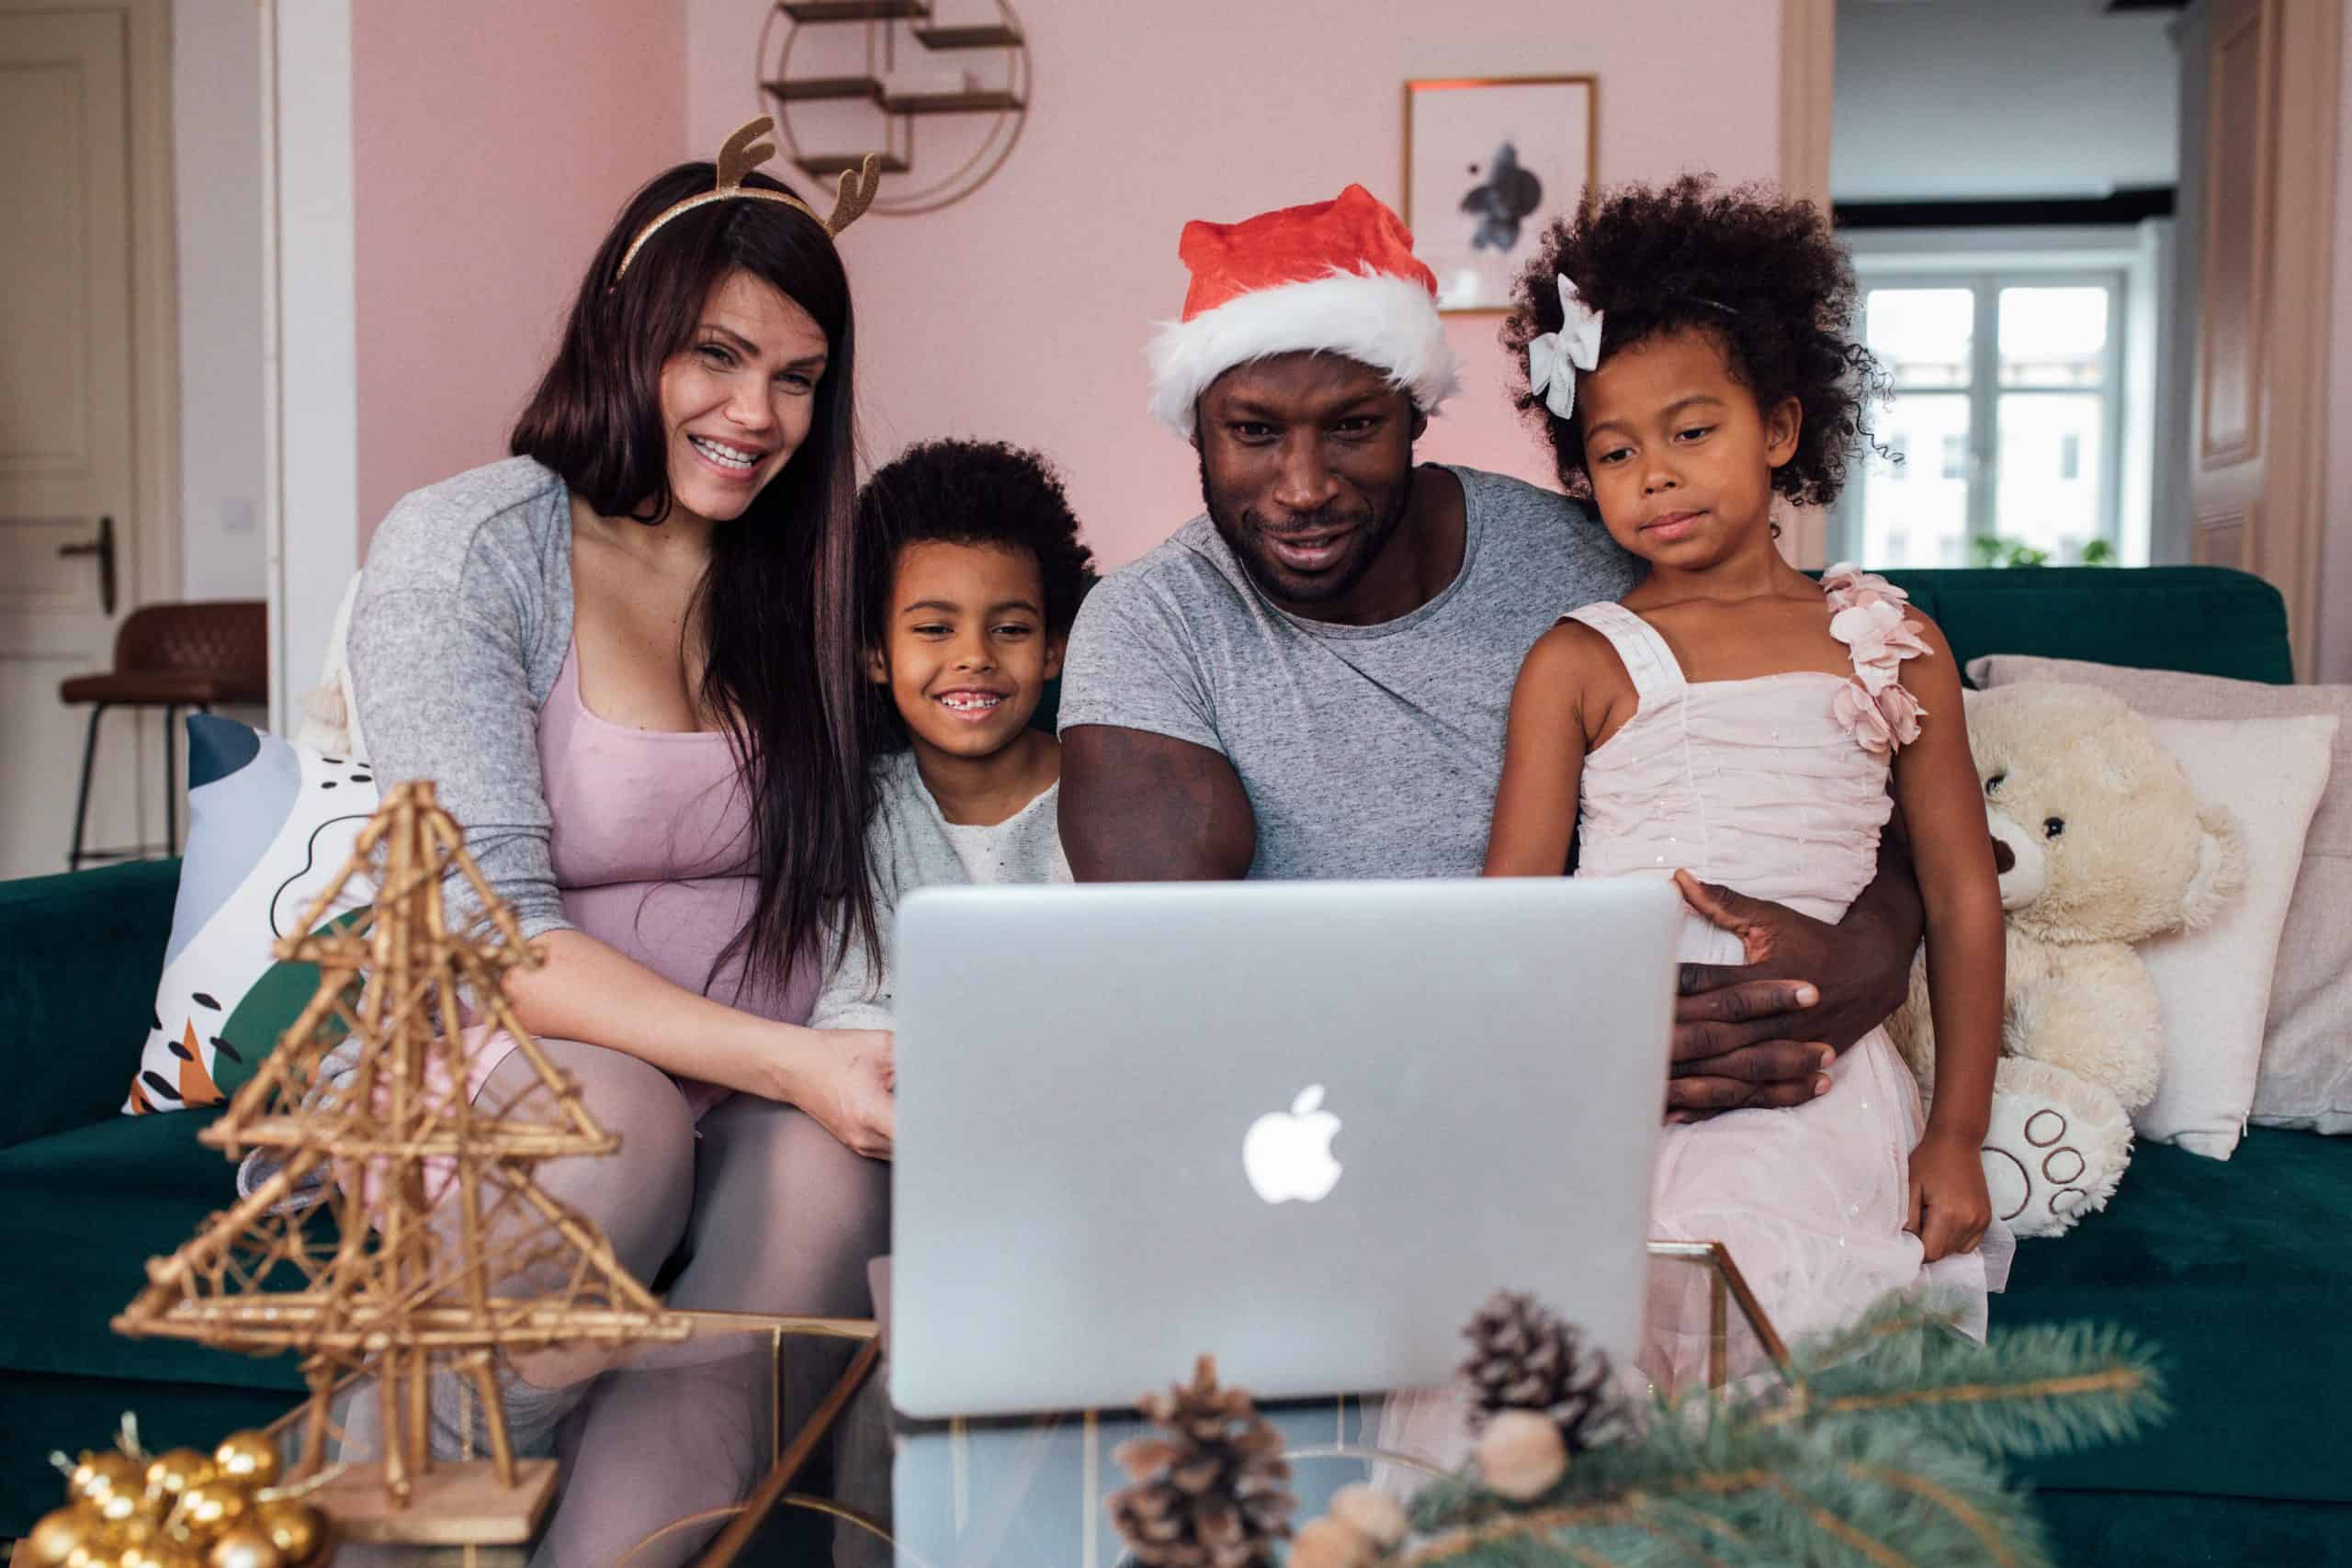 A family celebrating a socially distanced Christmas gathered in front of a laptop